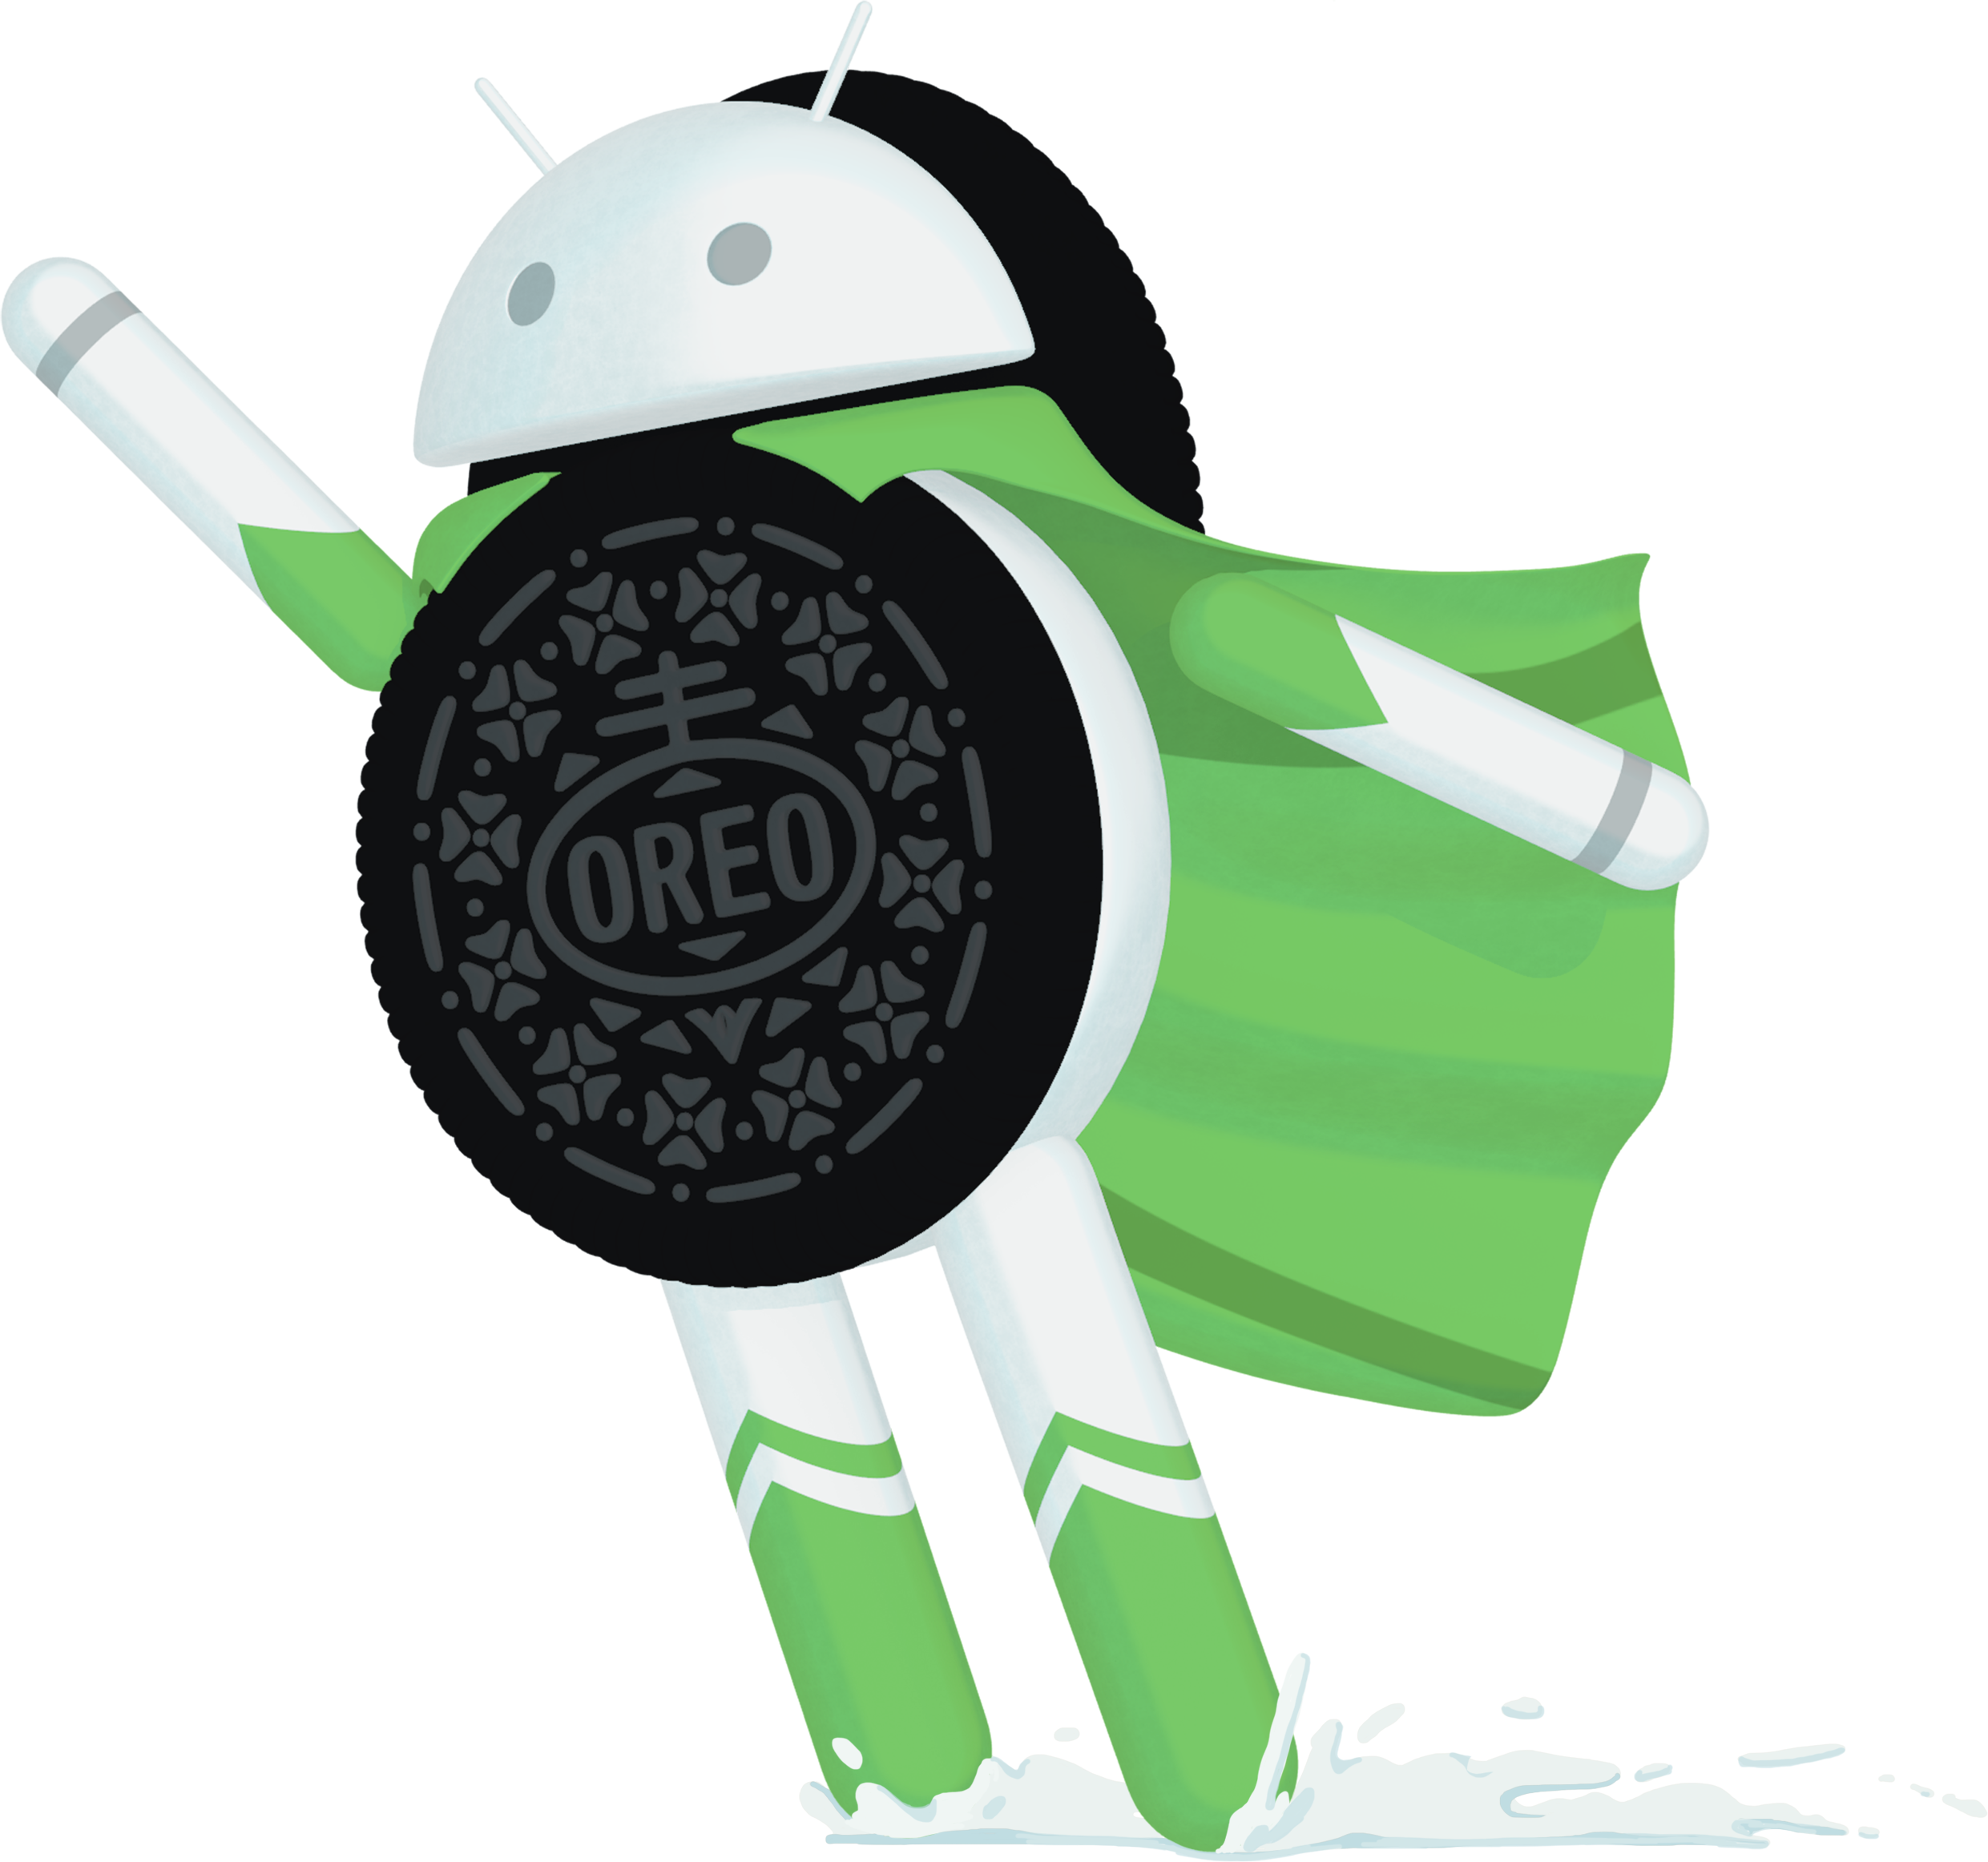 vector royalty free  android png for. Oreo vector stencil